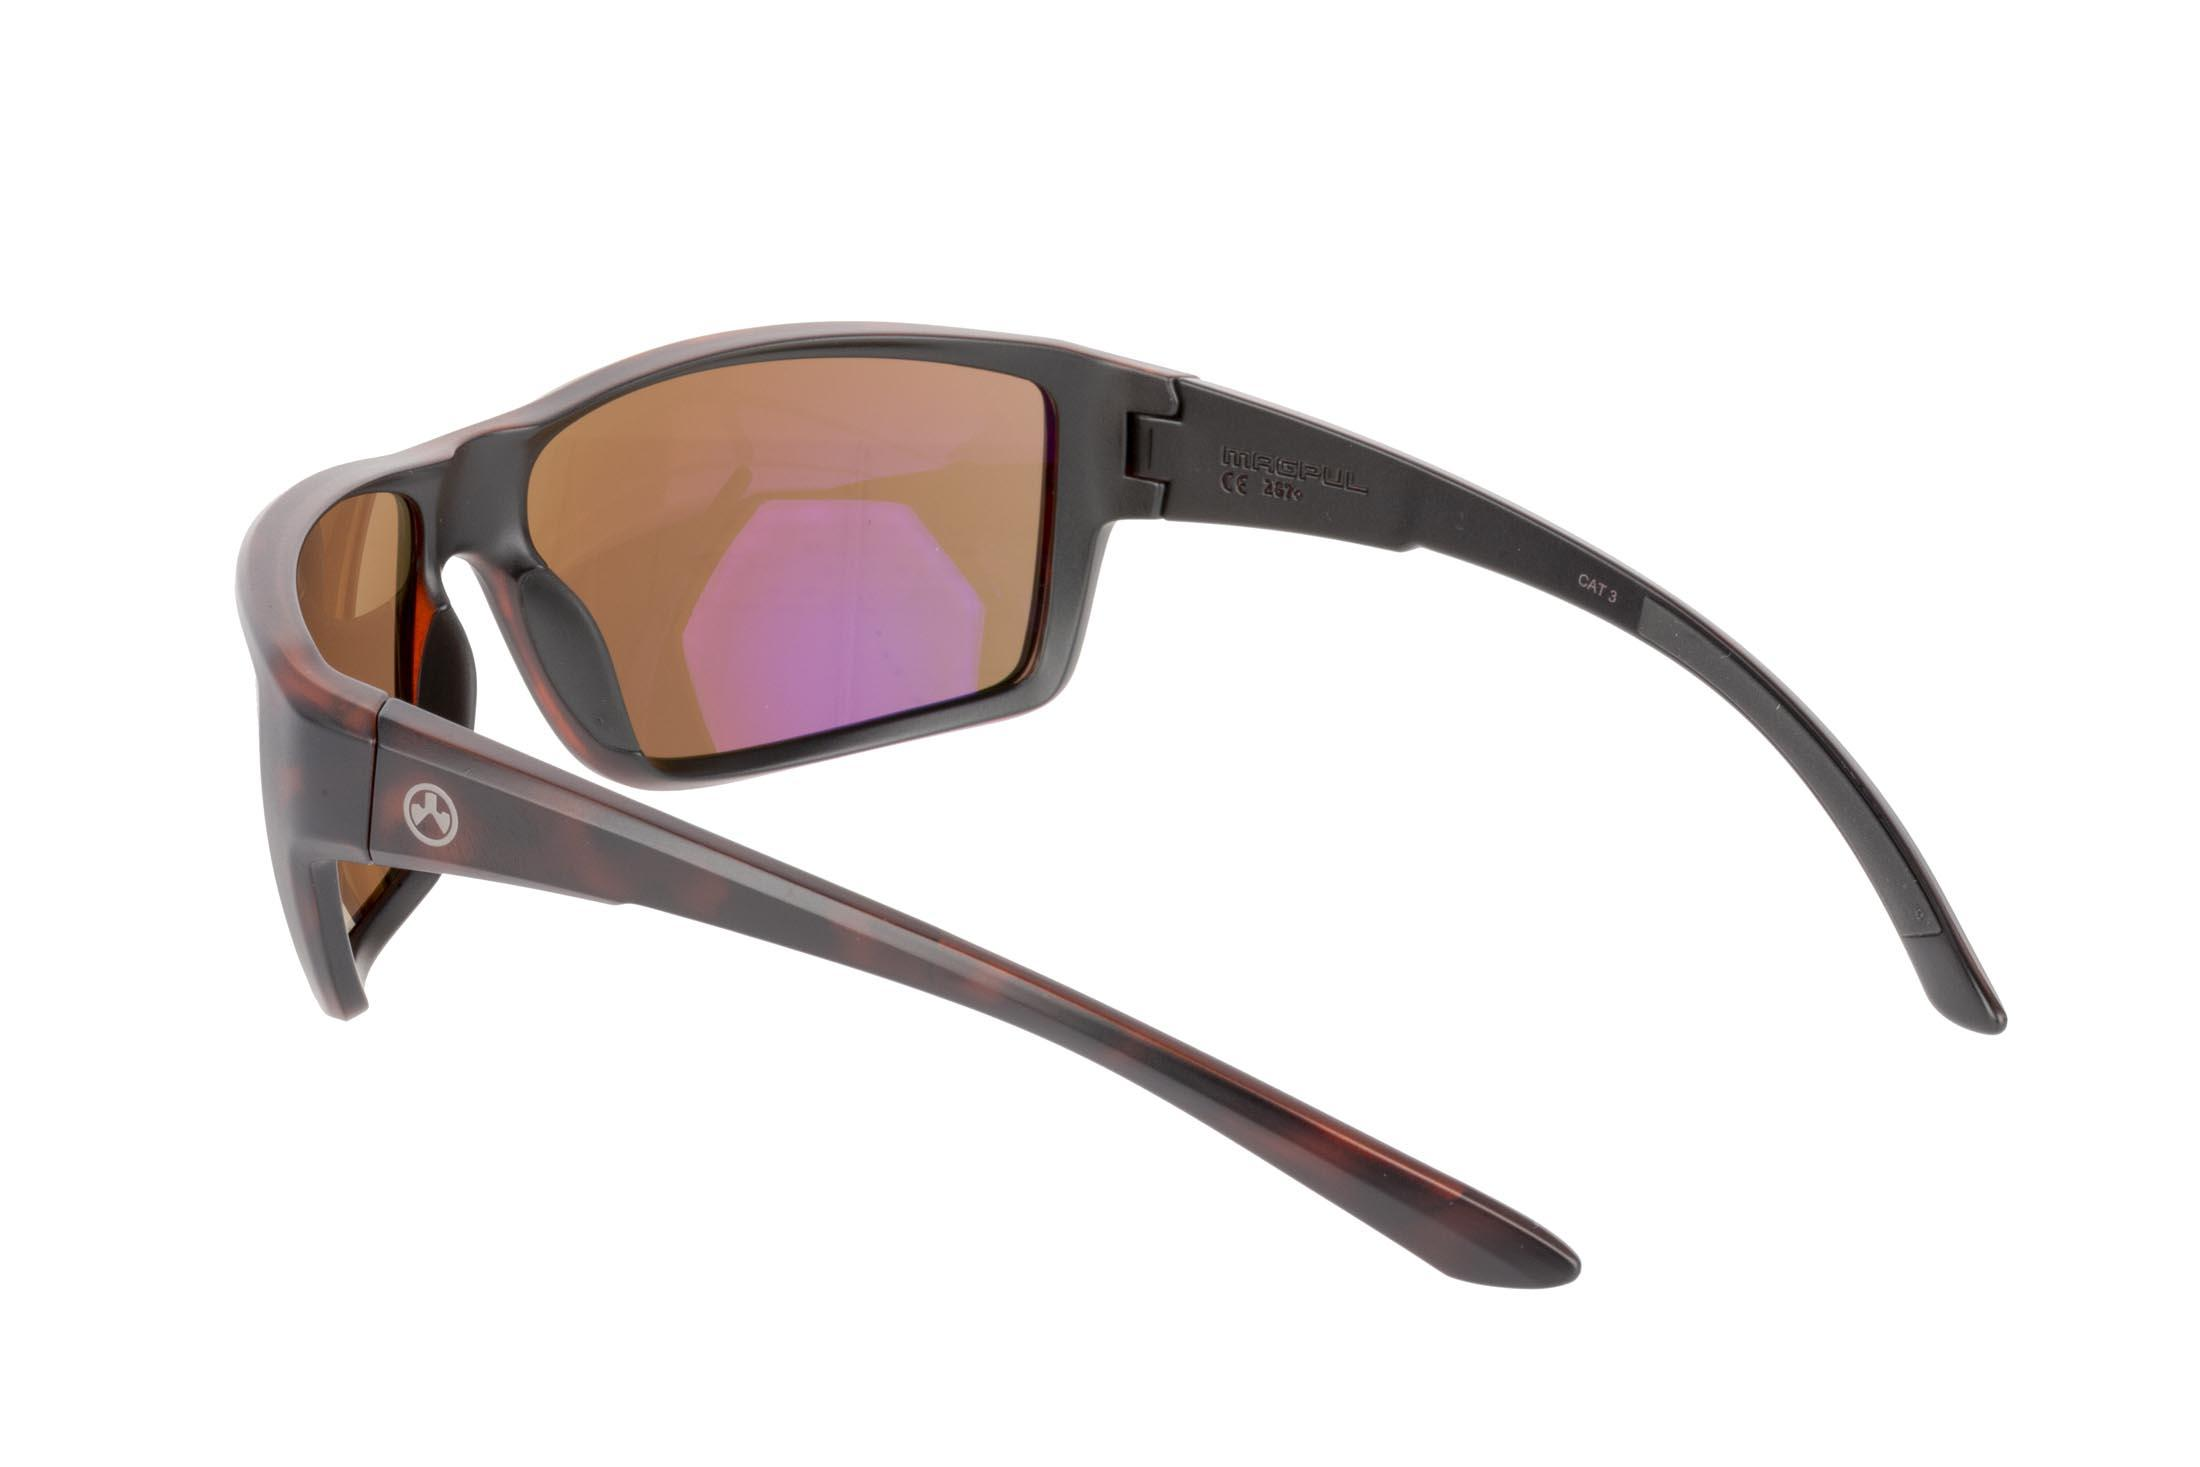 Magpul Summit gray frame eye protection with Bronze lenses are designed to complement over-ear hearing protection